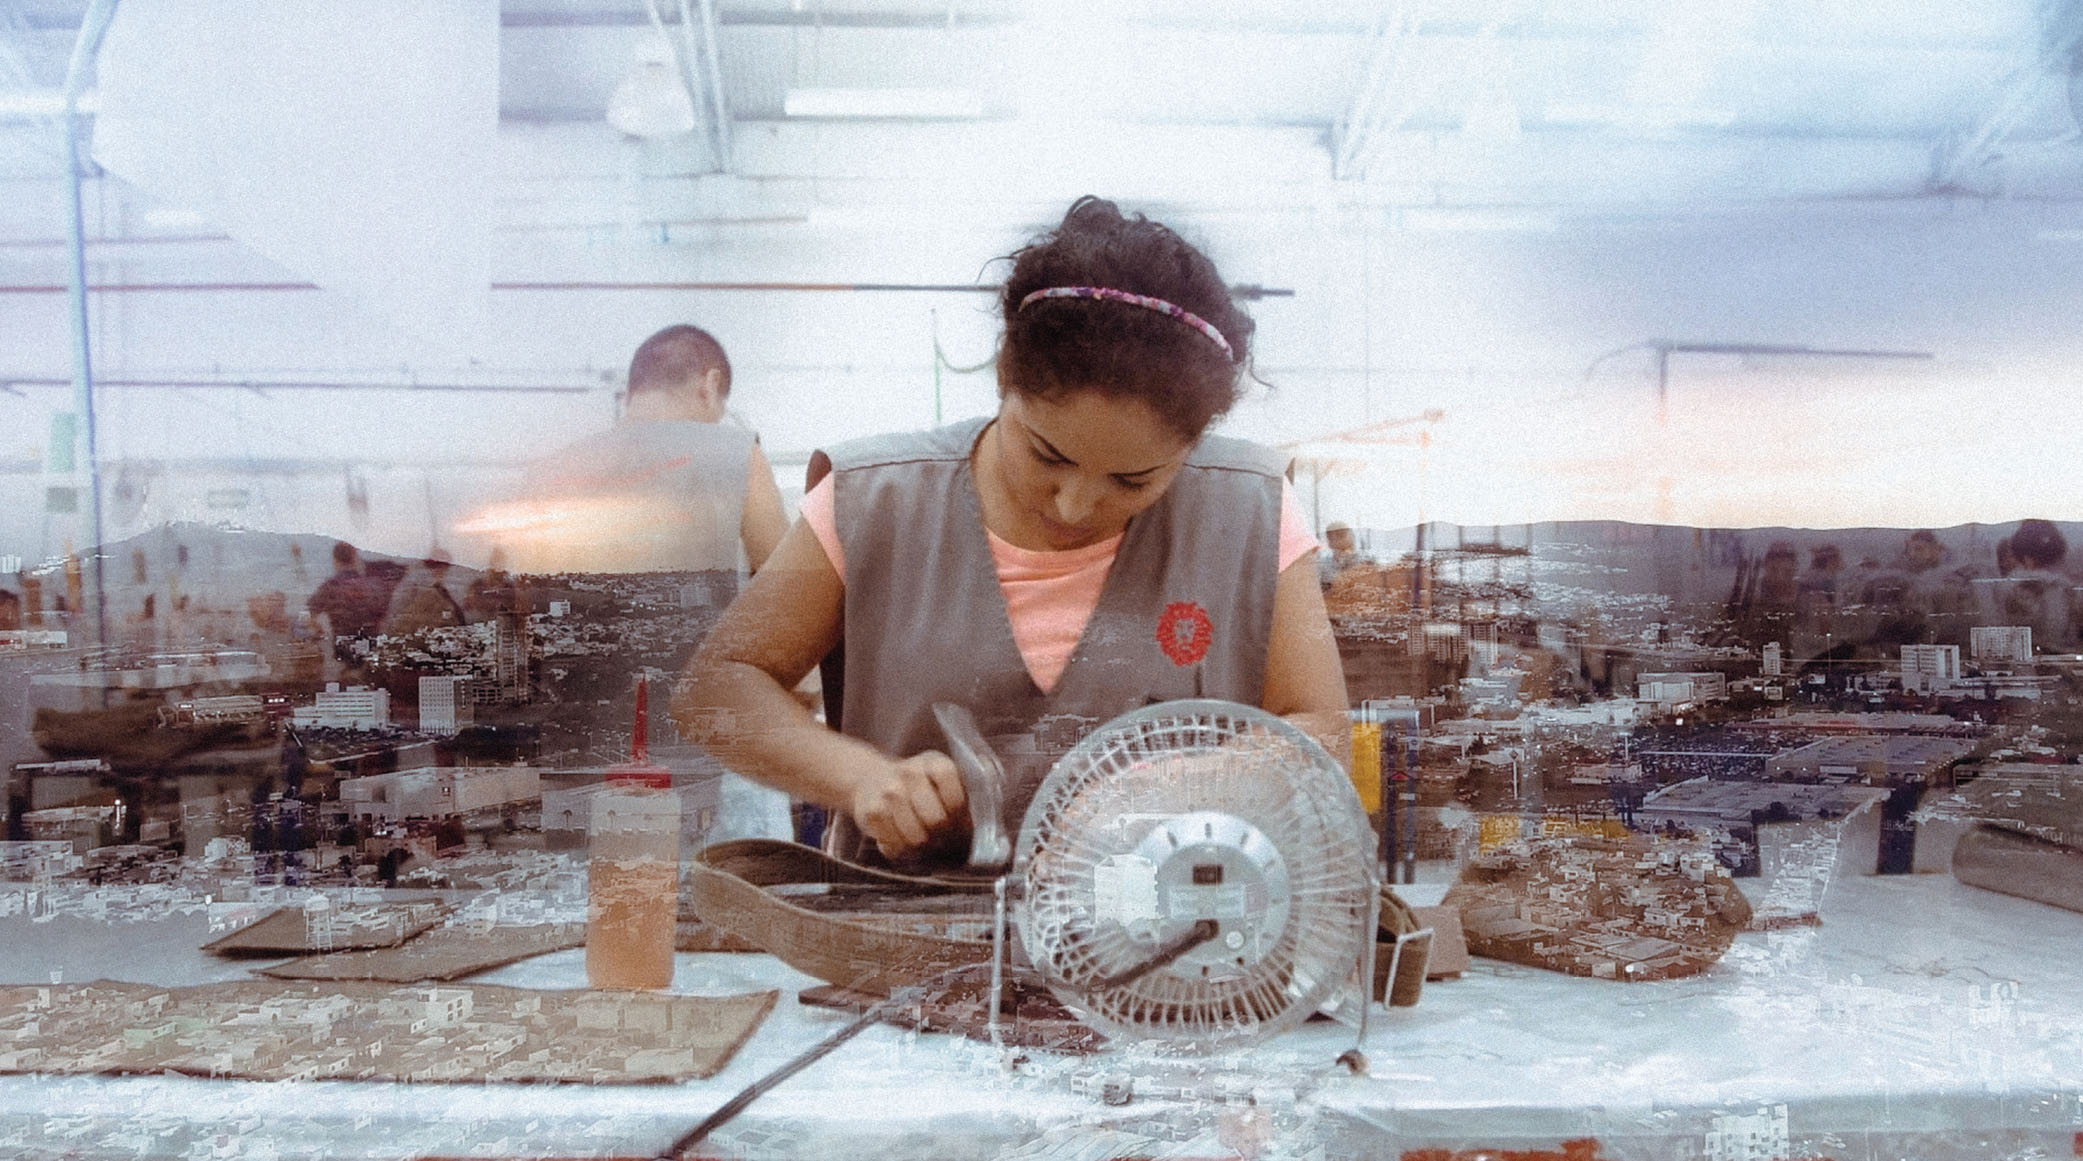 A woman works on a leather project